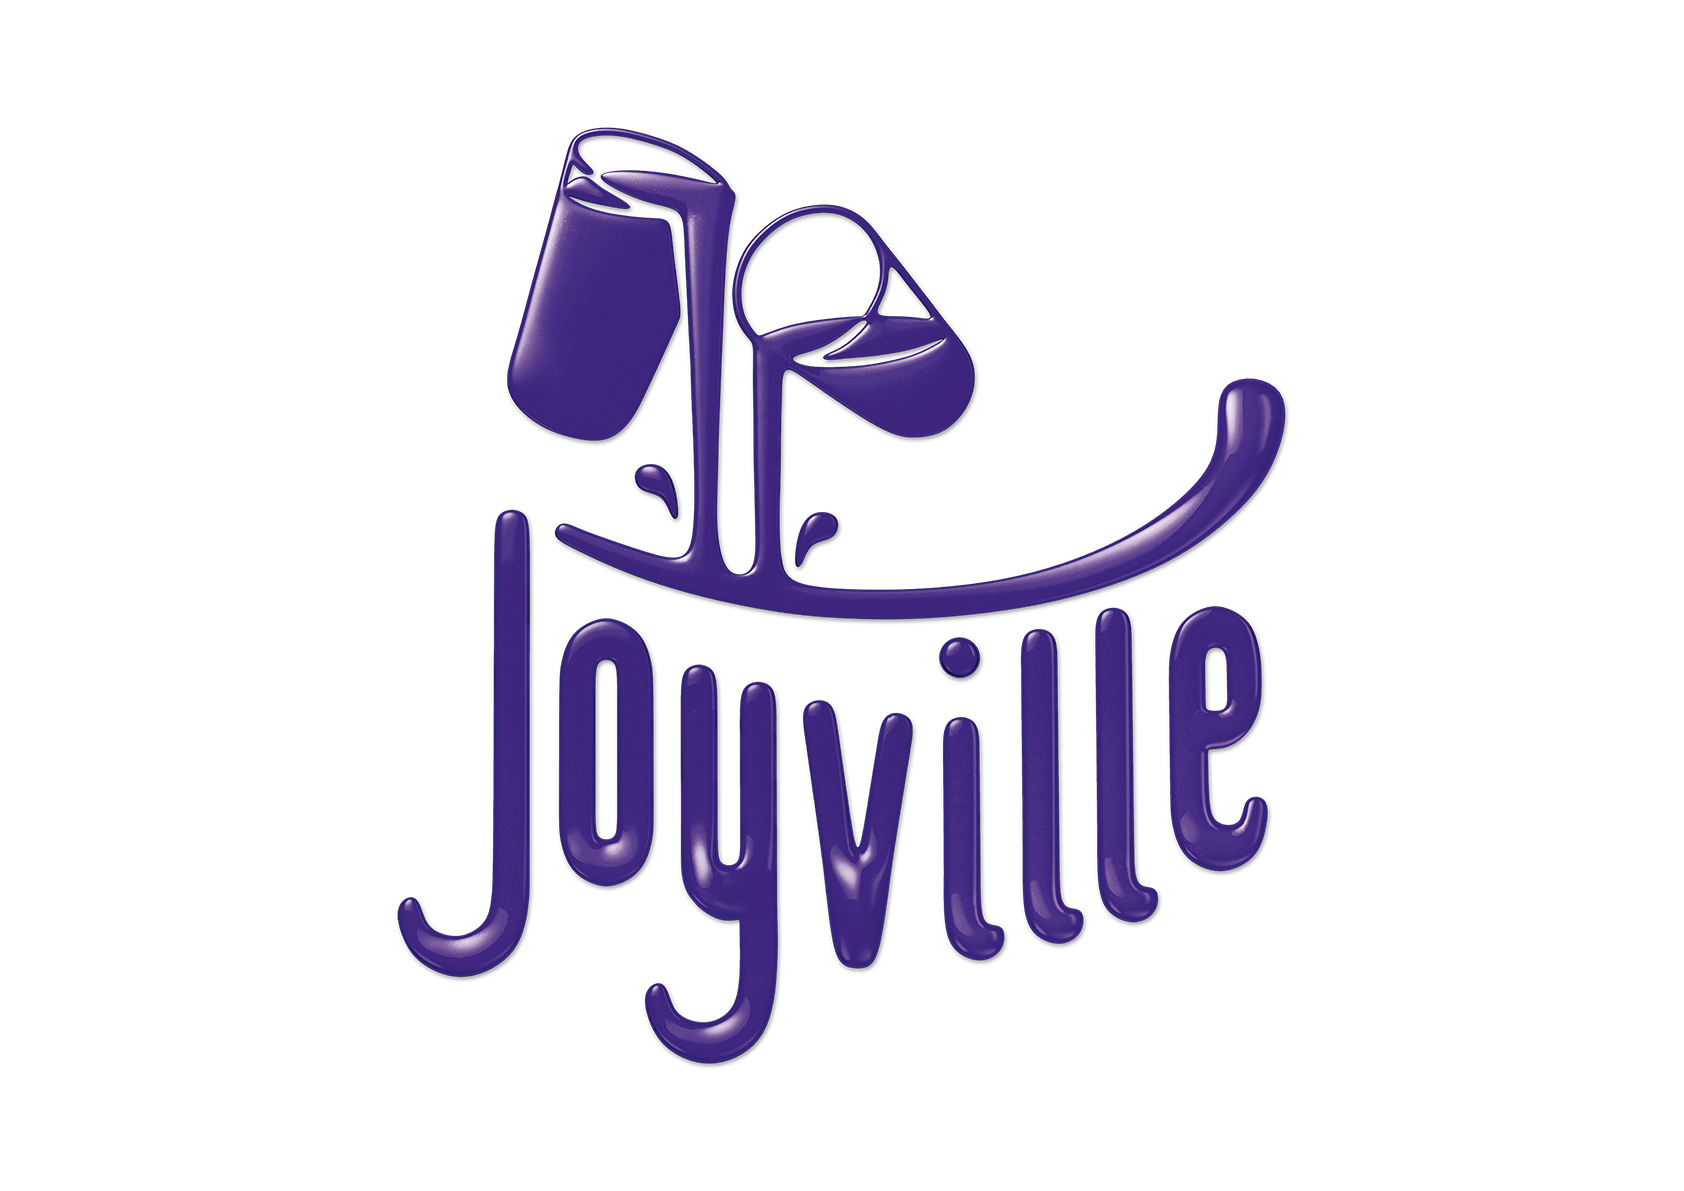 Joyville_Purple.jpg